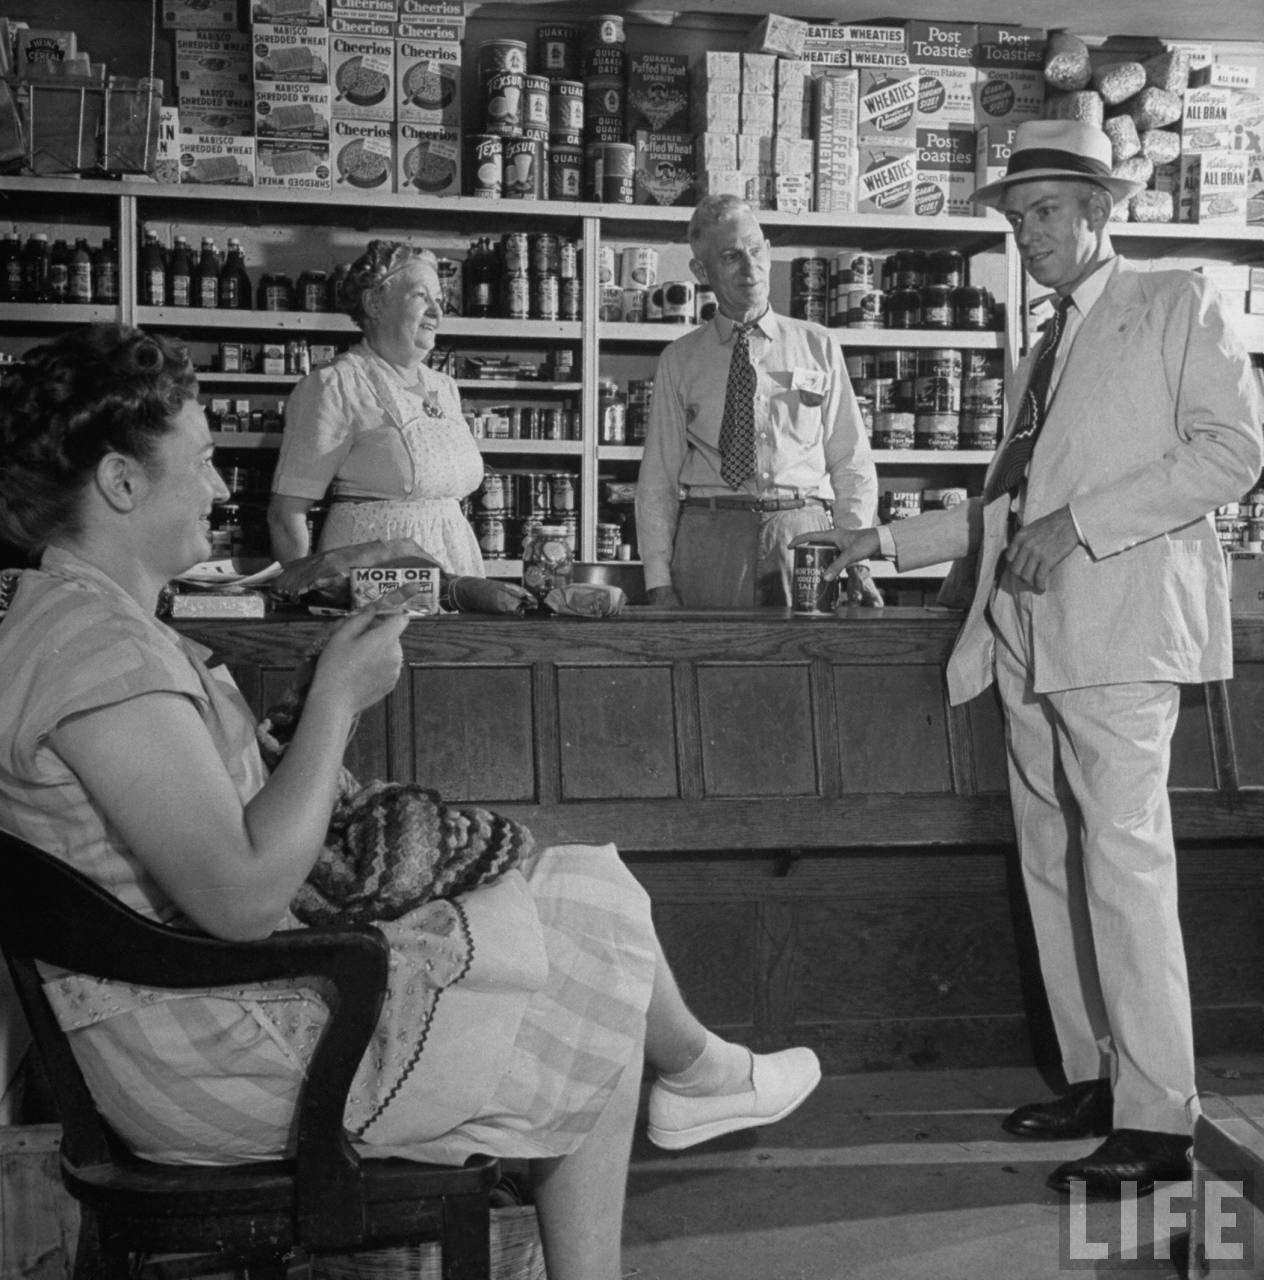 Enos A. Axtell (R), a candidate for office, standing with his family in the grocery store owned by his parents in Kansas City, MO. July 1946